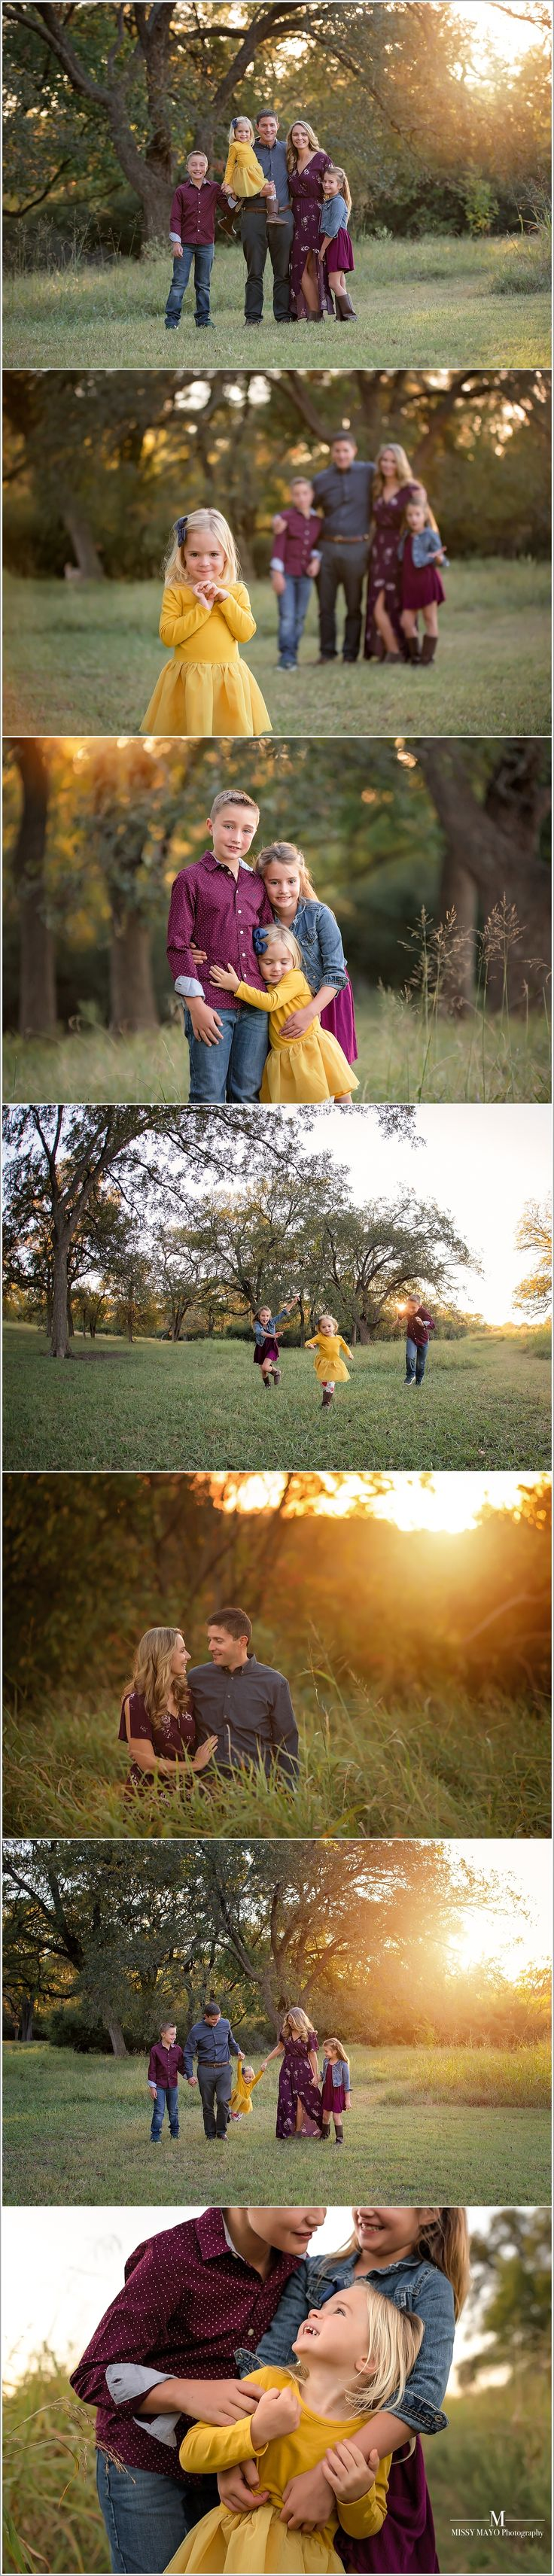 Tips for What to Wear for Family Photos From Dallas Family Photographer Missy Mayo